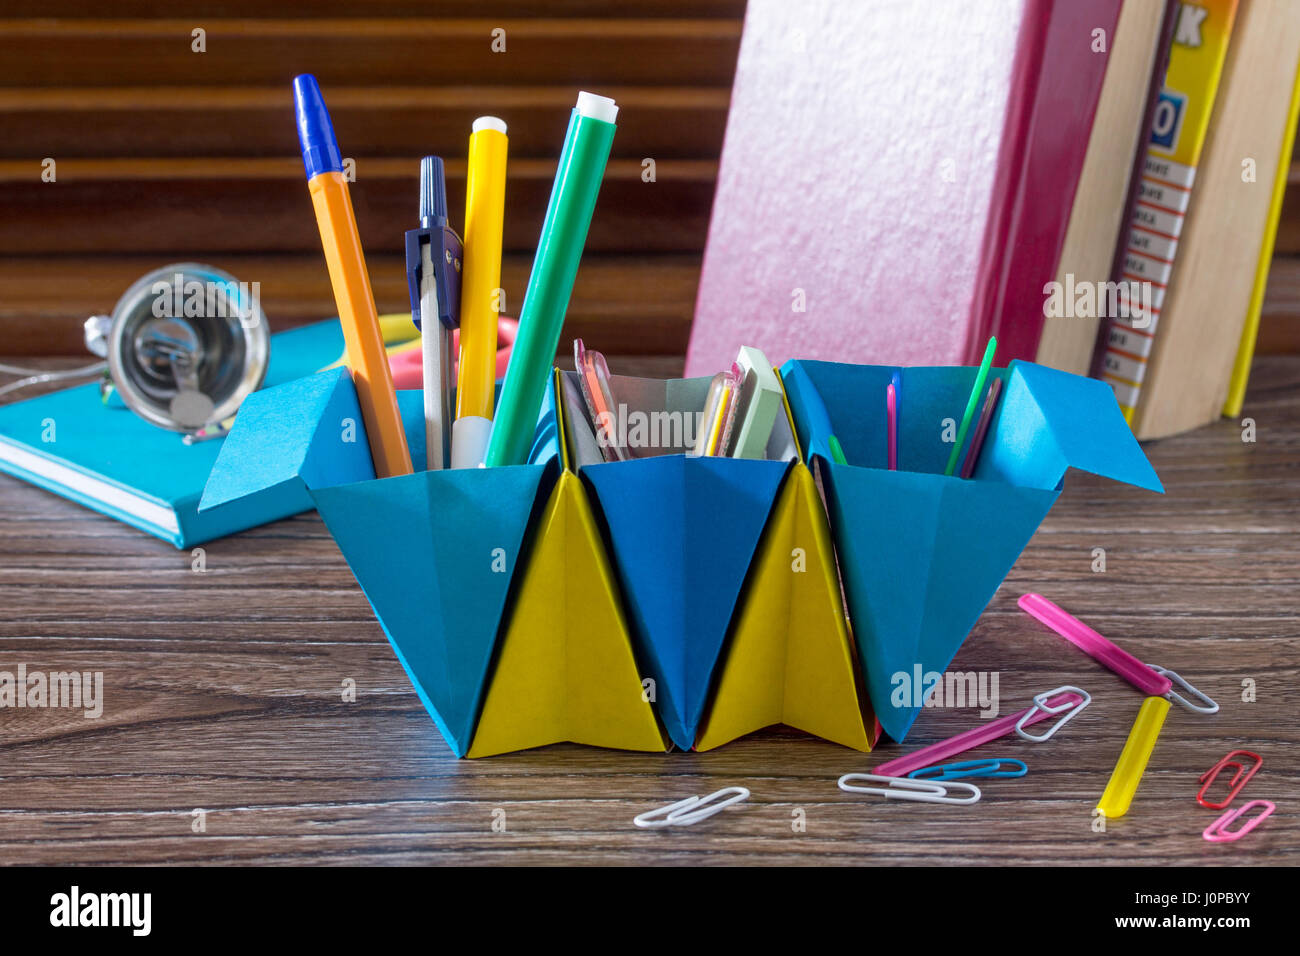 A Childrens Office Organizer Made Of Paper Is Filled With Office - Childrens desk accessories